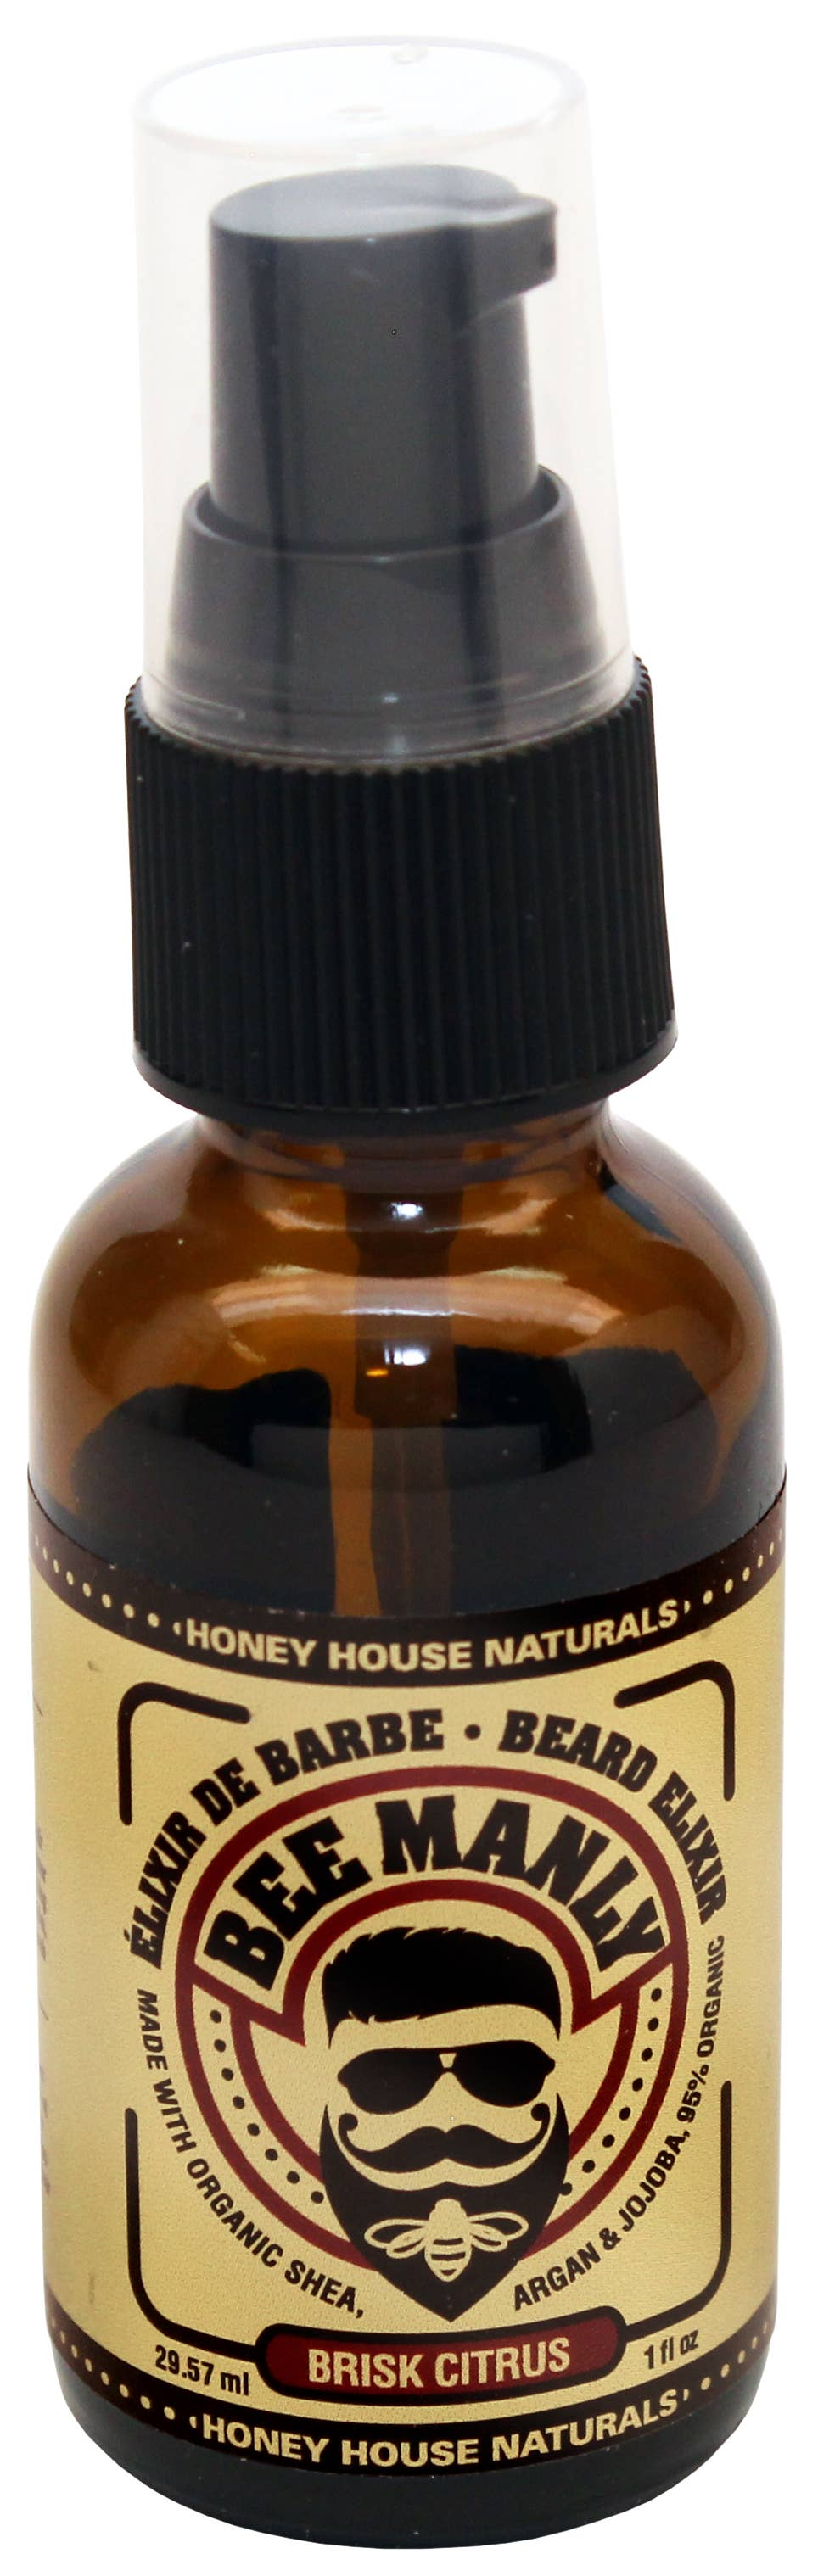 Honey House Naturals - Bee Manly Beard Elixir